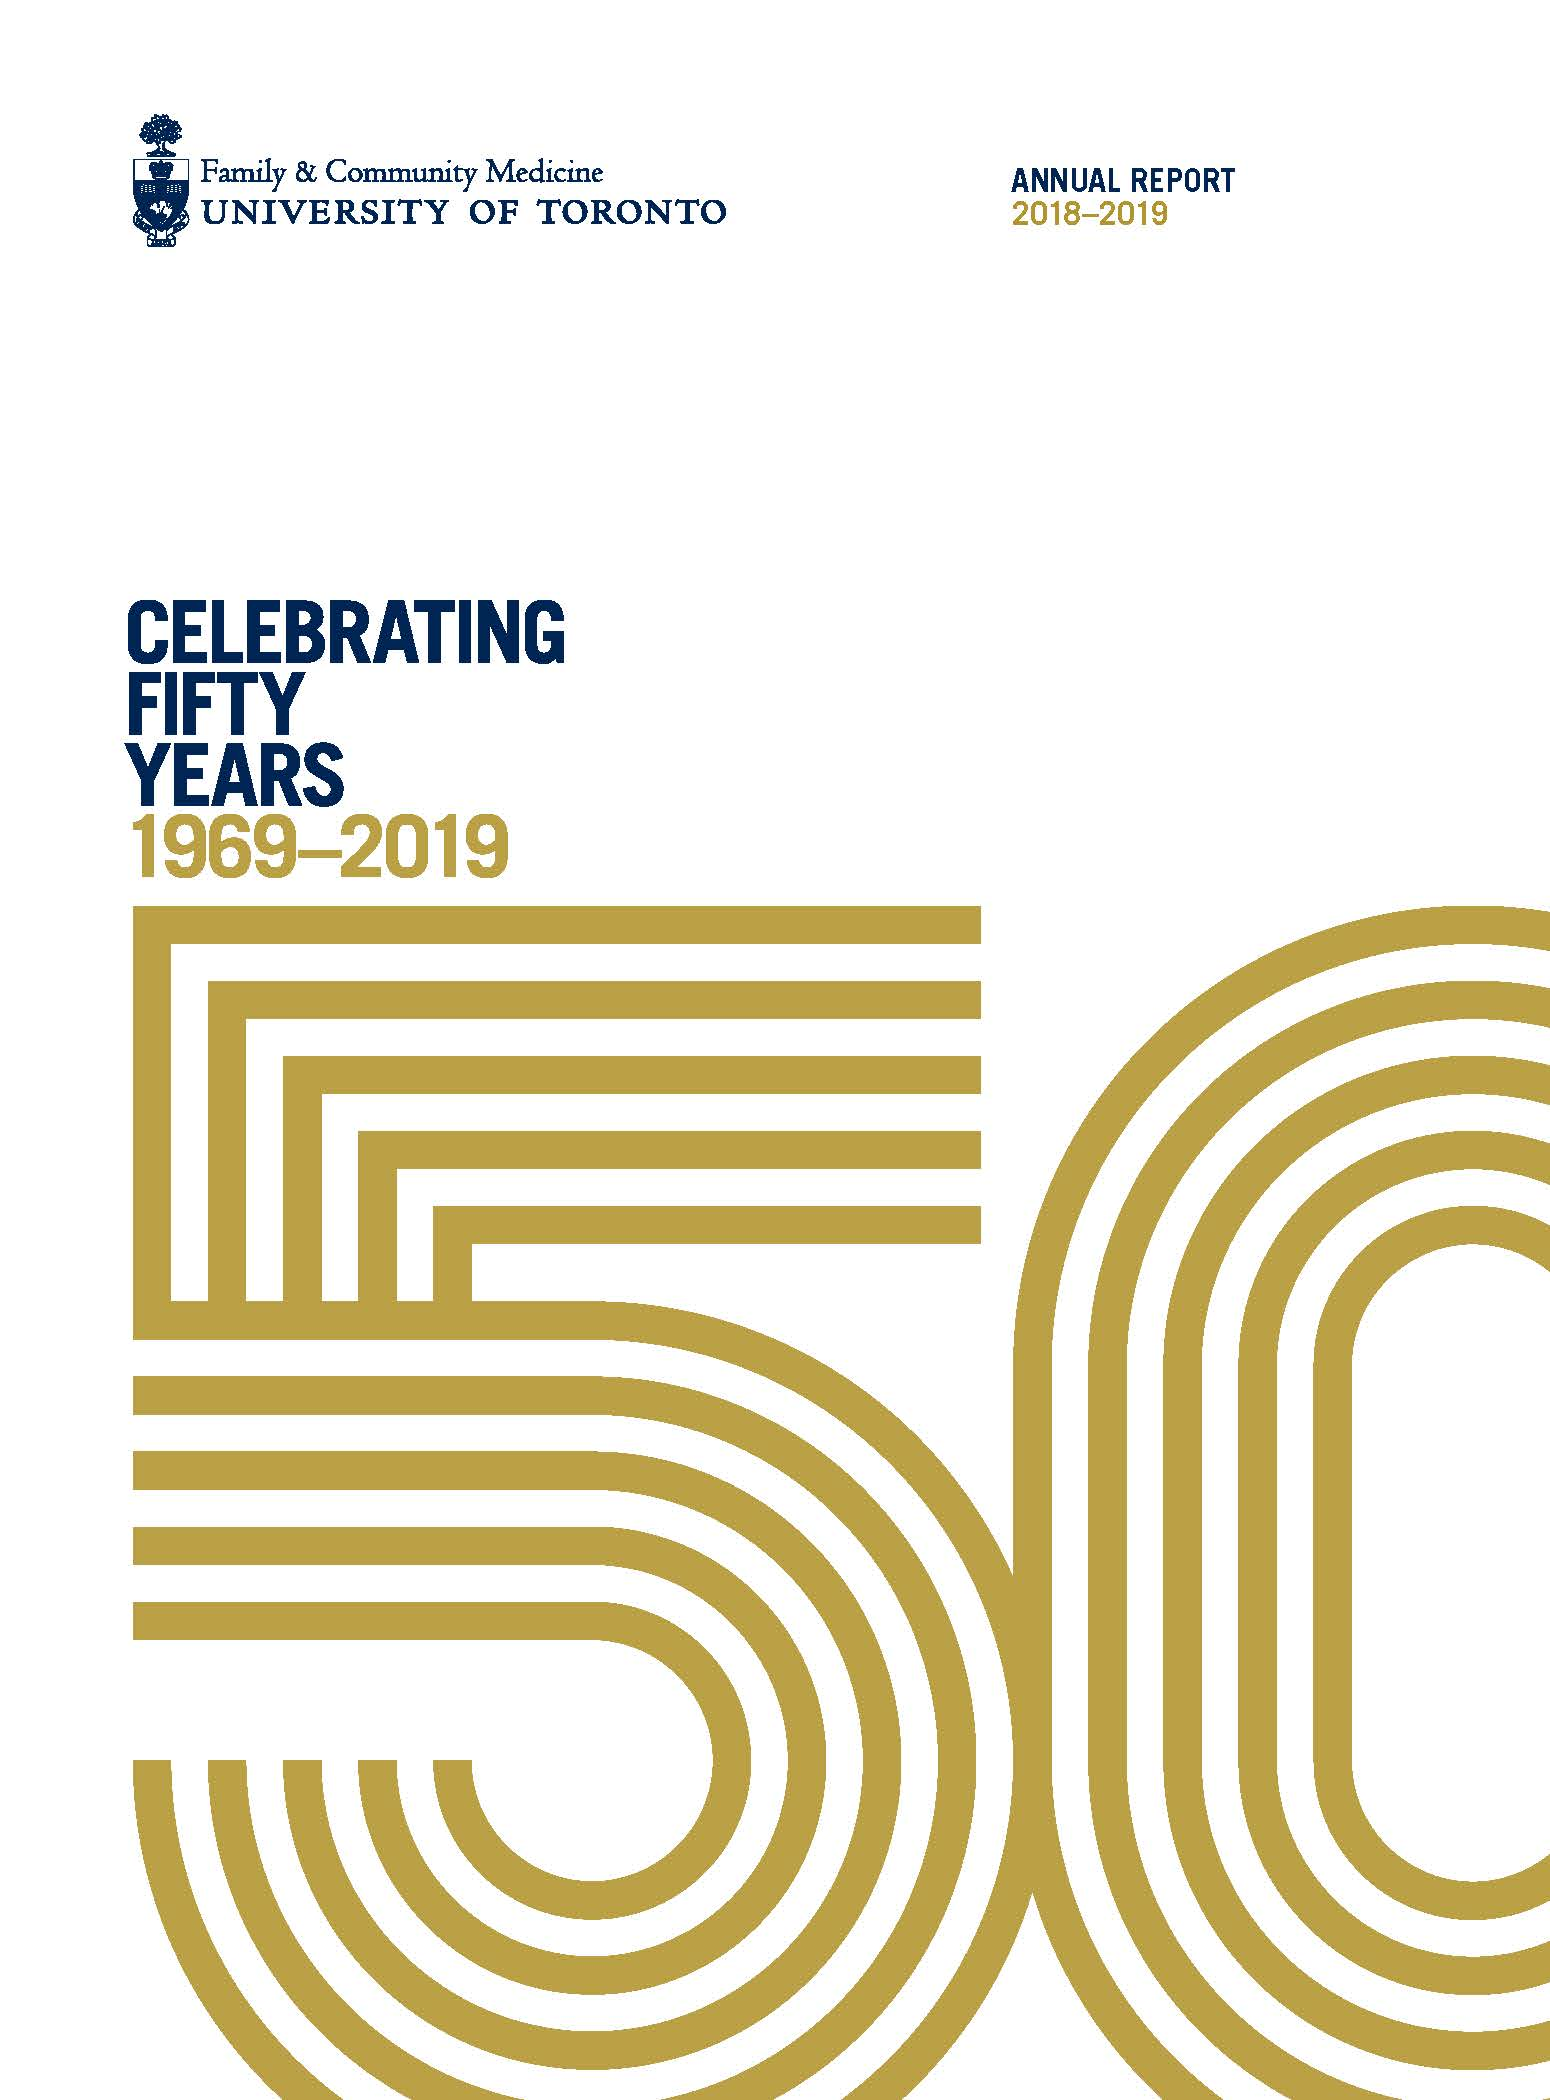 dfcm_annual_report_2019-2020_cover